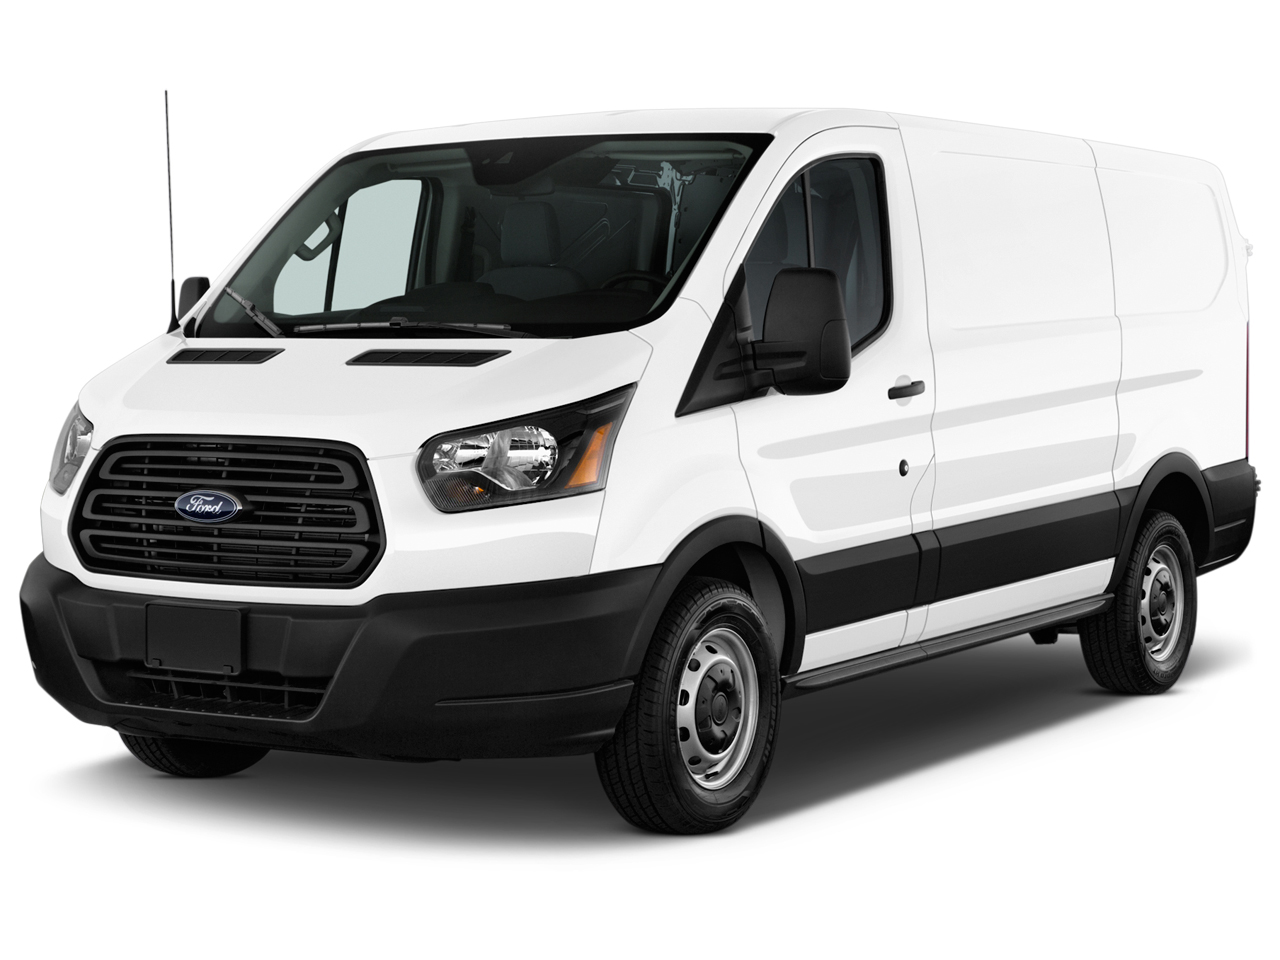 2016 Ford Transit Cargo Van Review Ratings Specs Prices